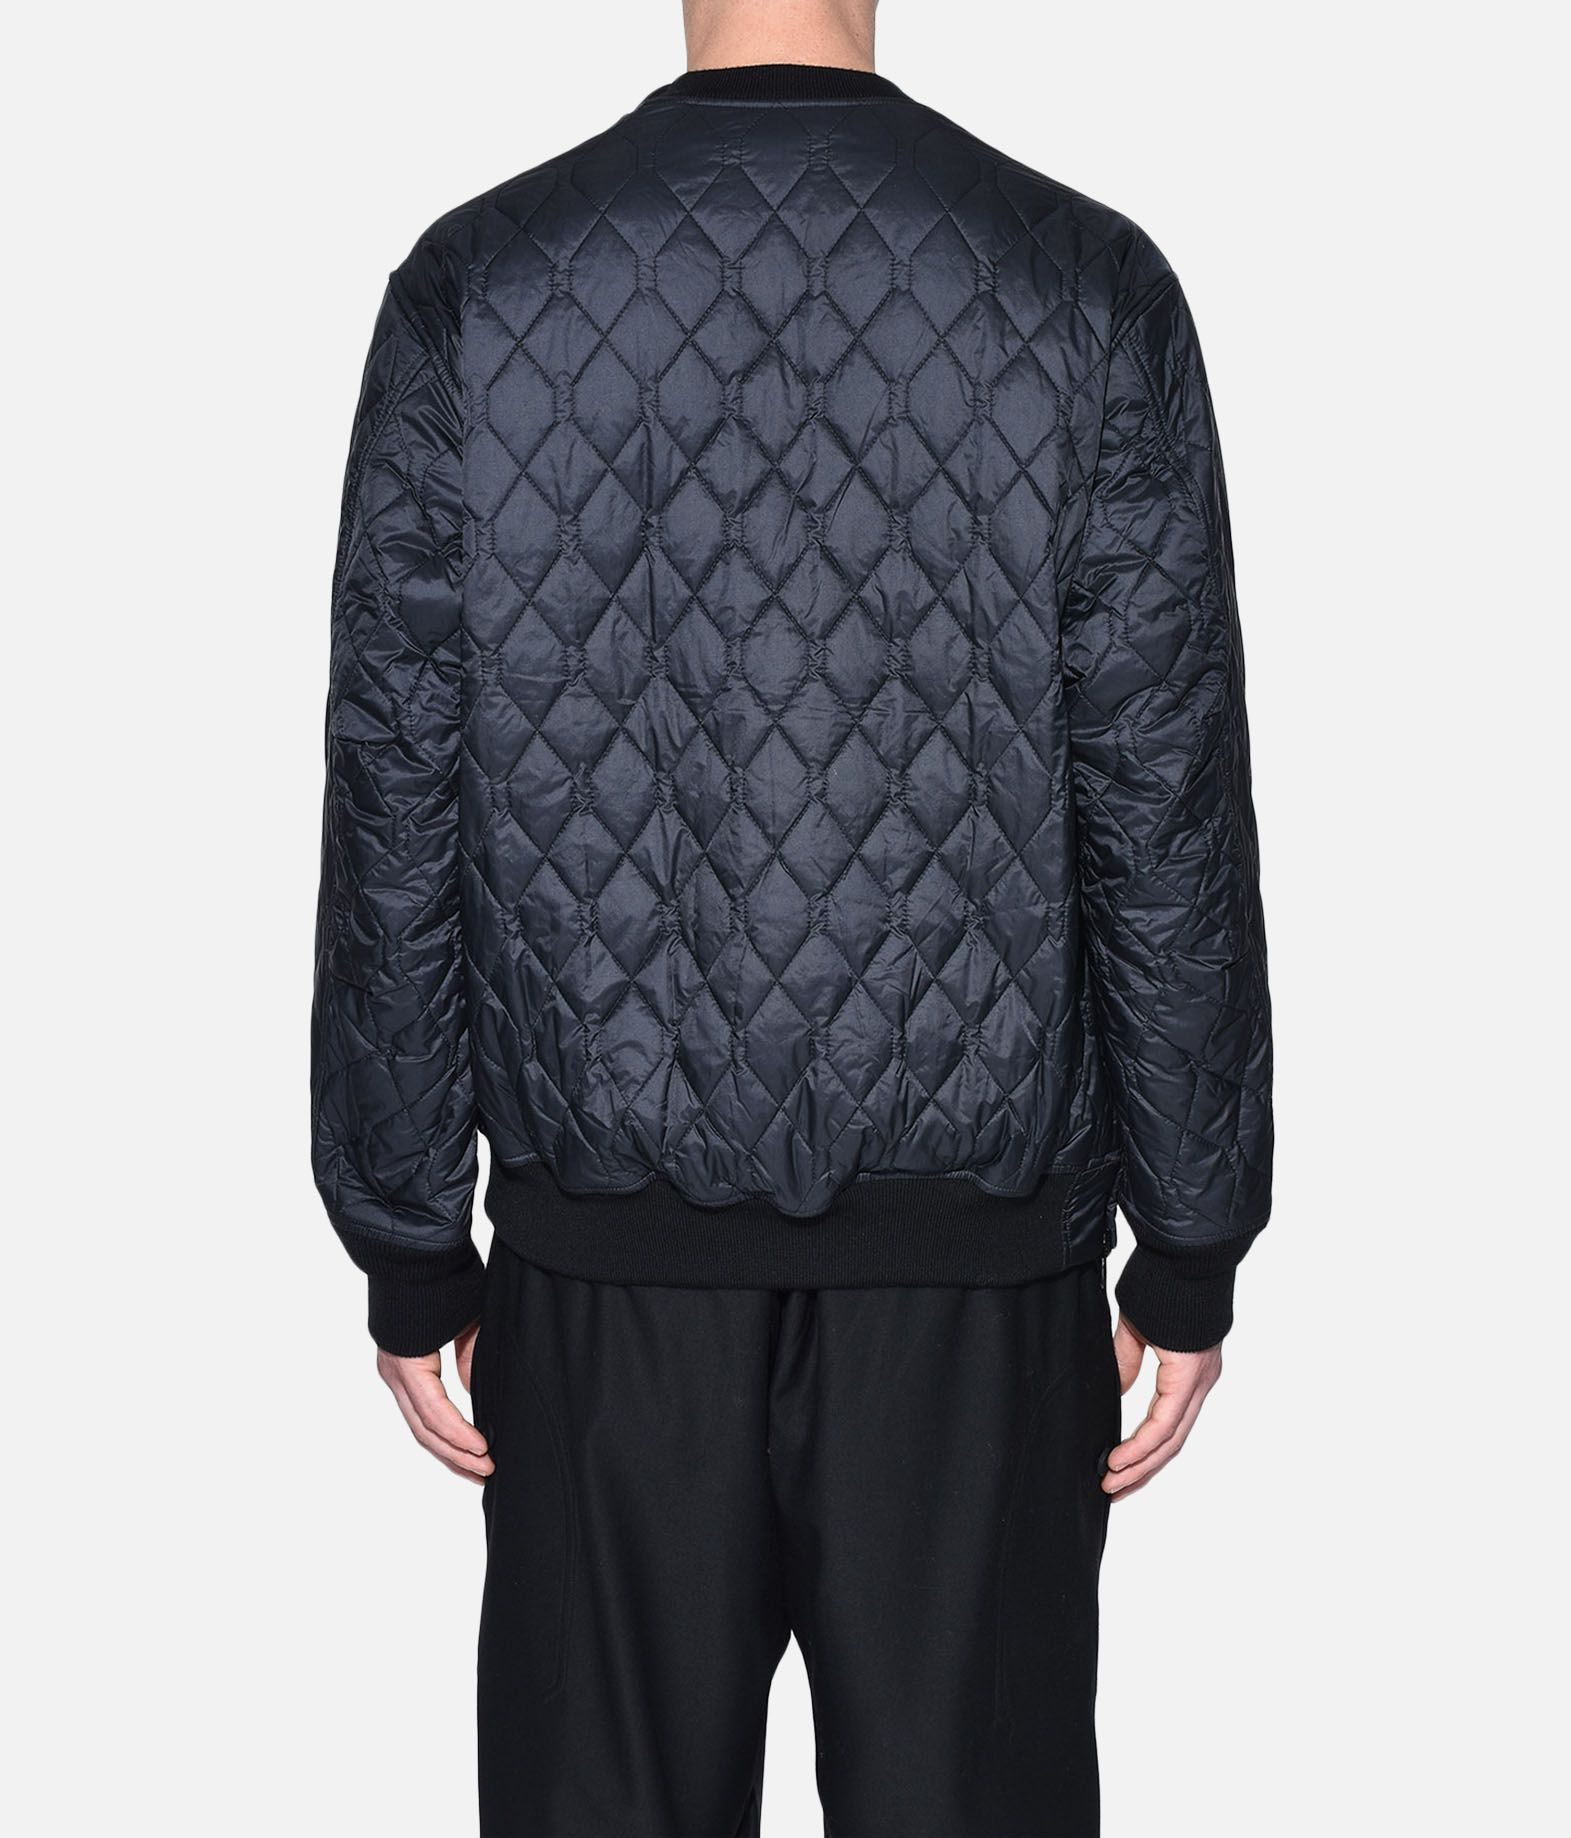 Y-3 Y-3 Quilted Sweater スウェット メンズ d